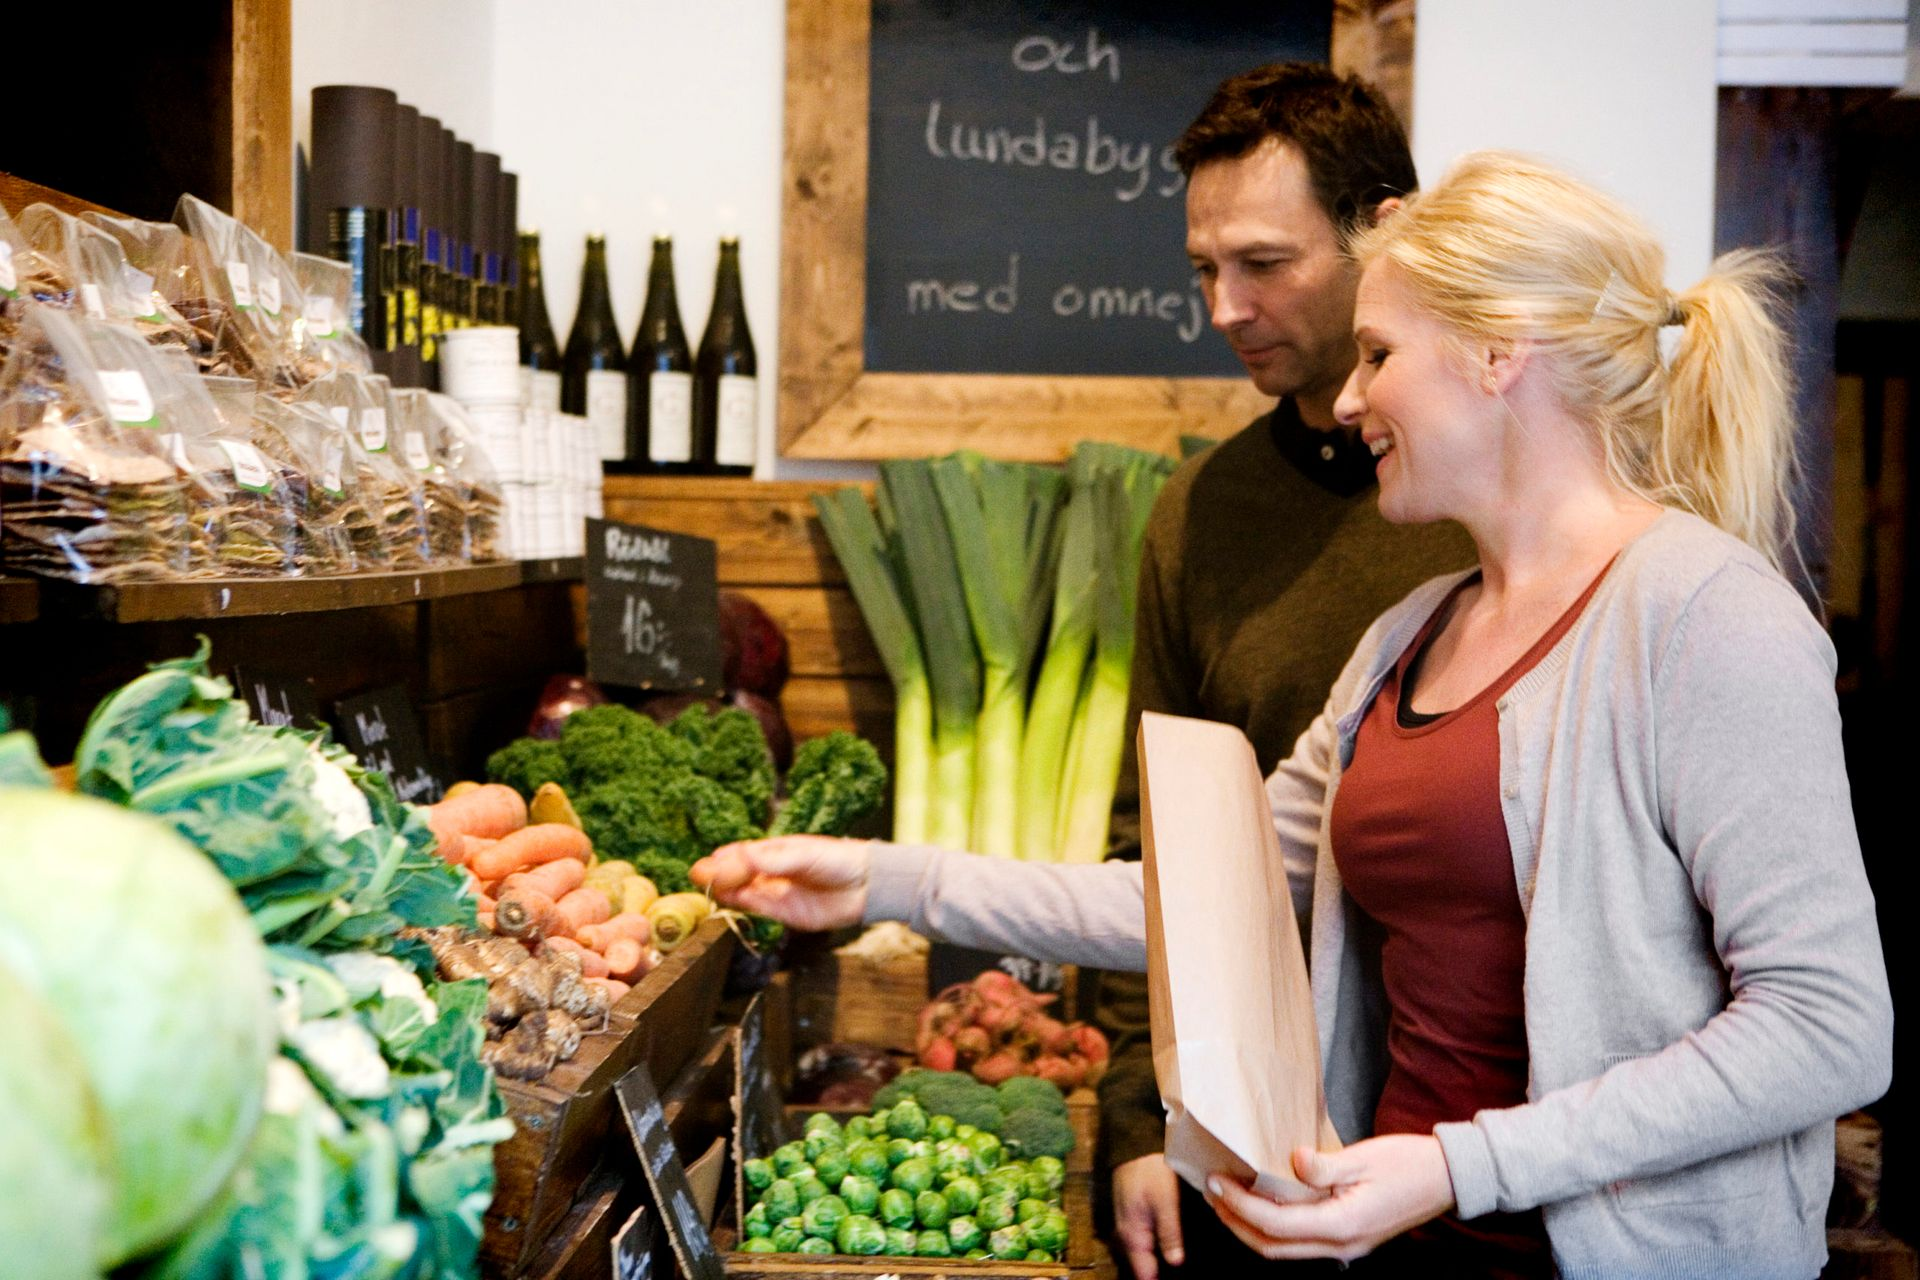 Two people shopping for vegetables.